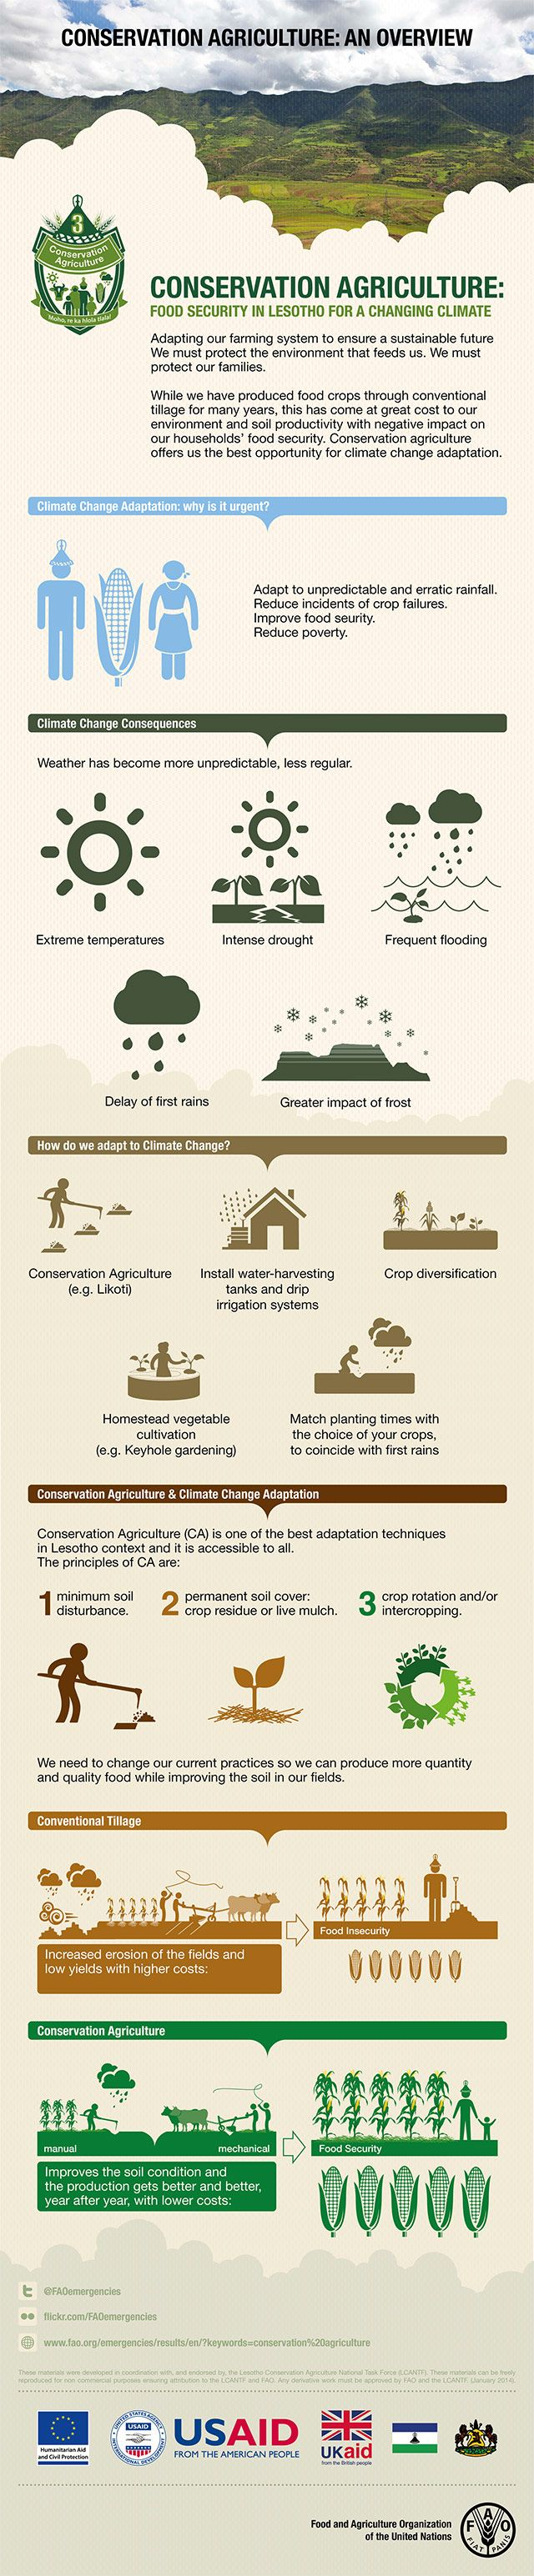 best images about multimodal essay info graphics while we have produced food crops through conventional tillage for many years this has come at great cost to our environment and soil productivity